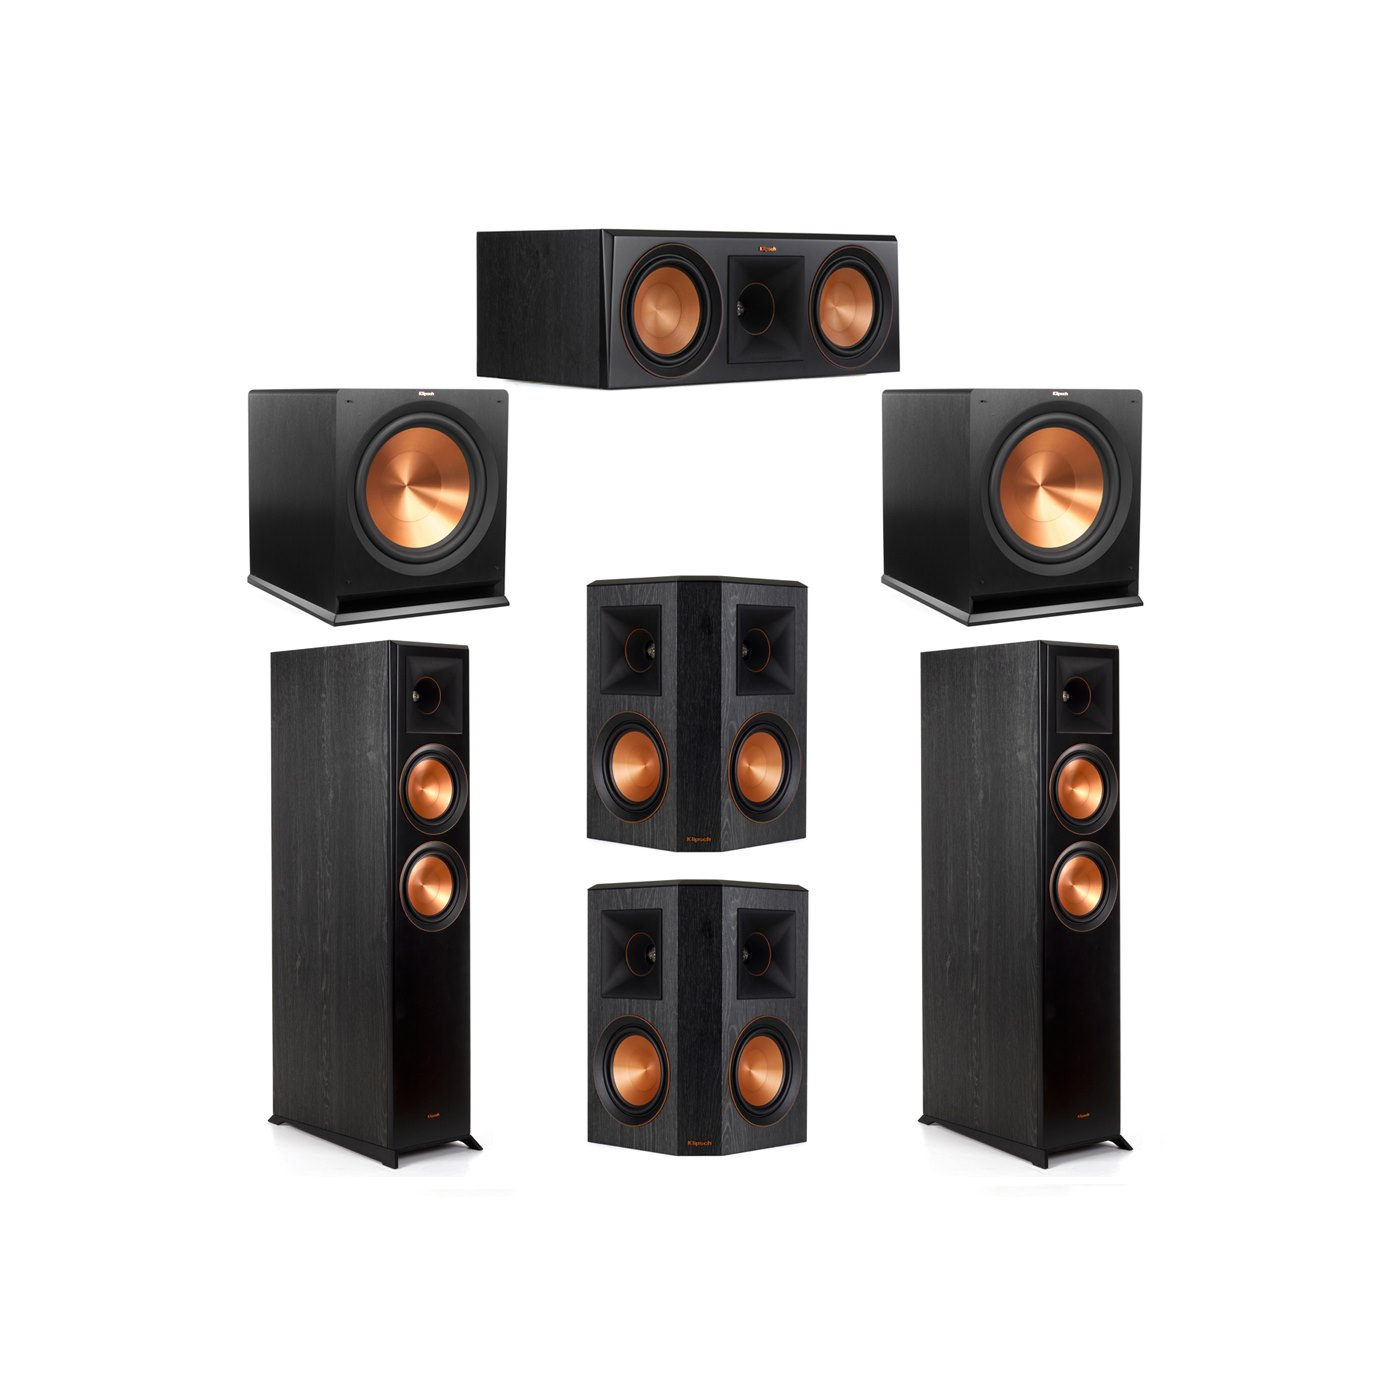 Klipsch 5.2 System with 2 RP-6000F Floorstanding Speakers, 1 Klipsch RP-600C Center Speaker, 2 Klipsch RP-502S Surround Speakers, 2 Klipsch R-115SW Subwoofers